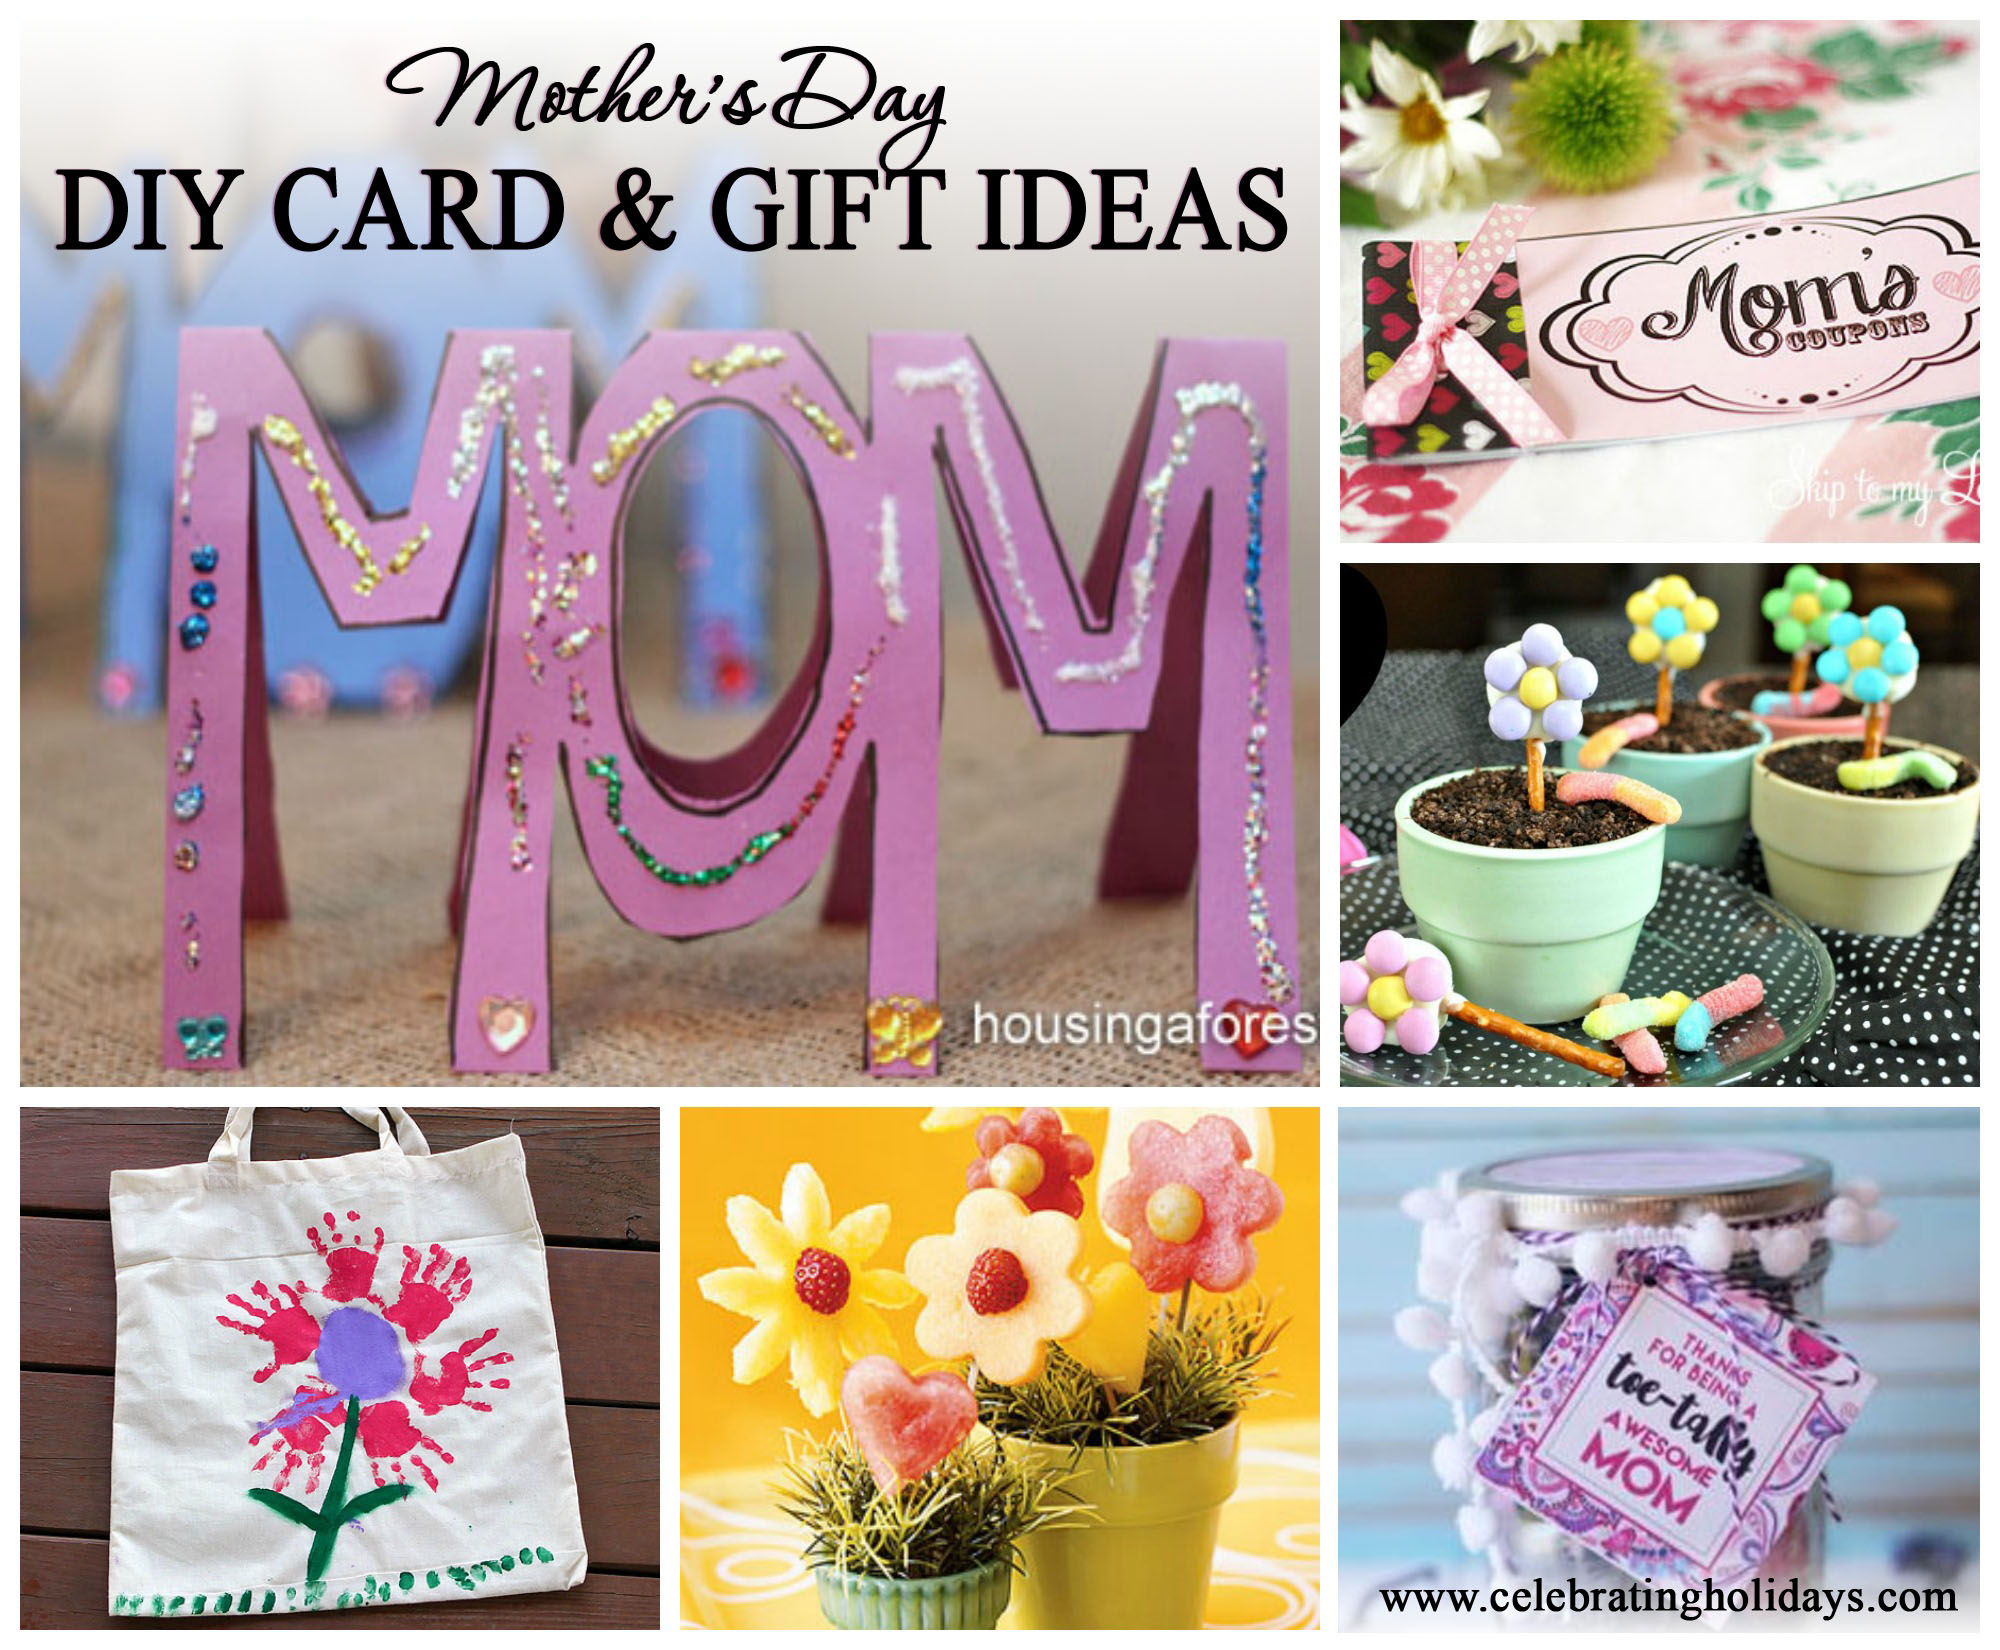 mother's day card and gift ideas | celebrating holidays